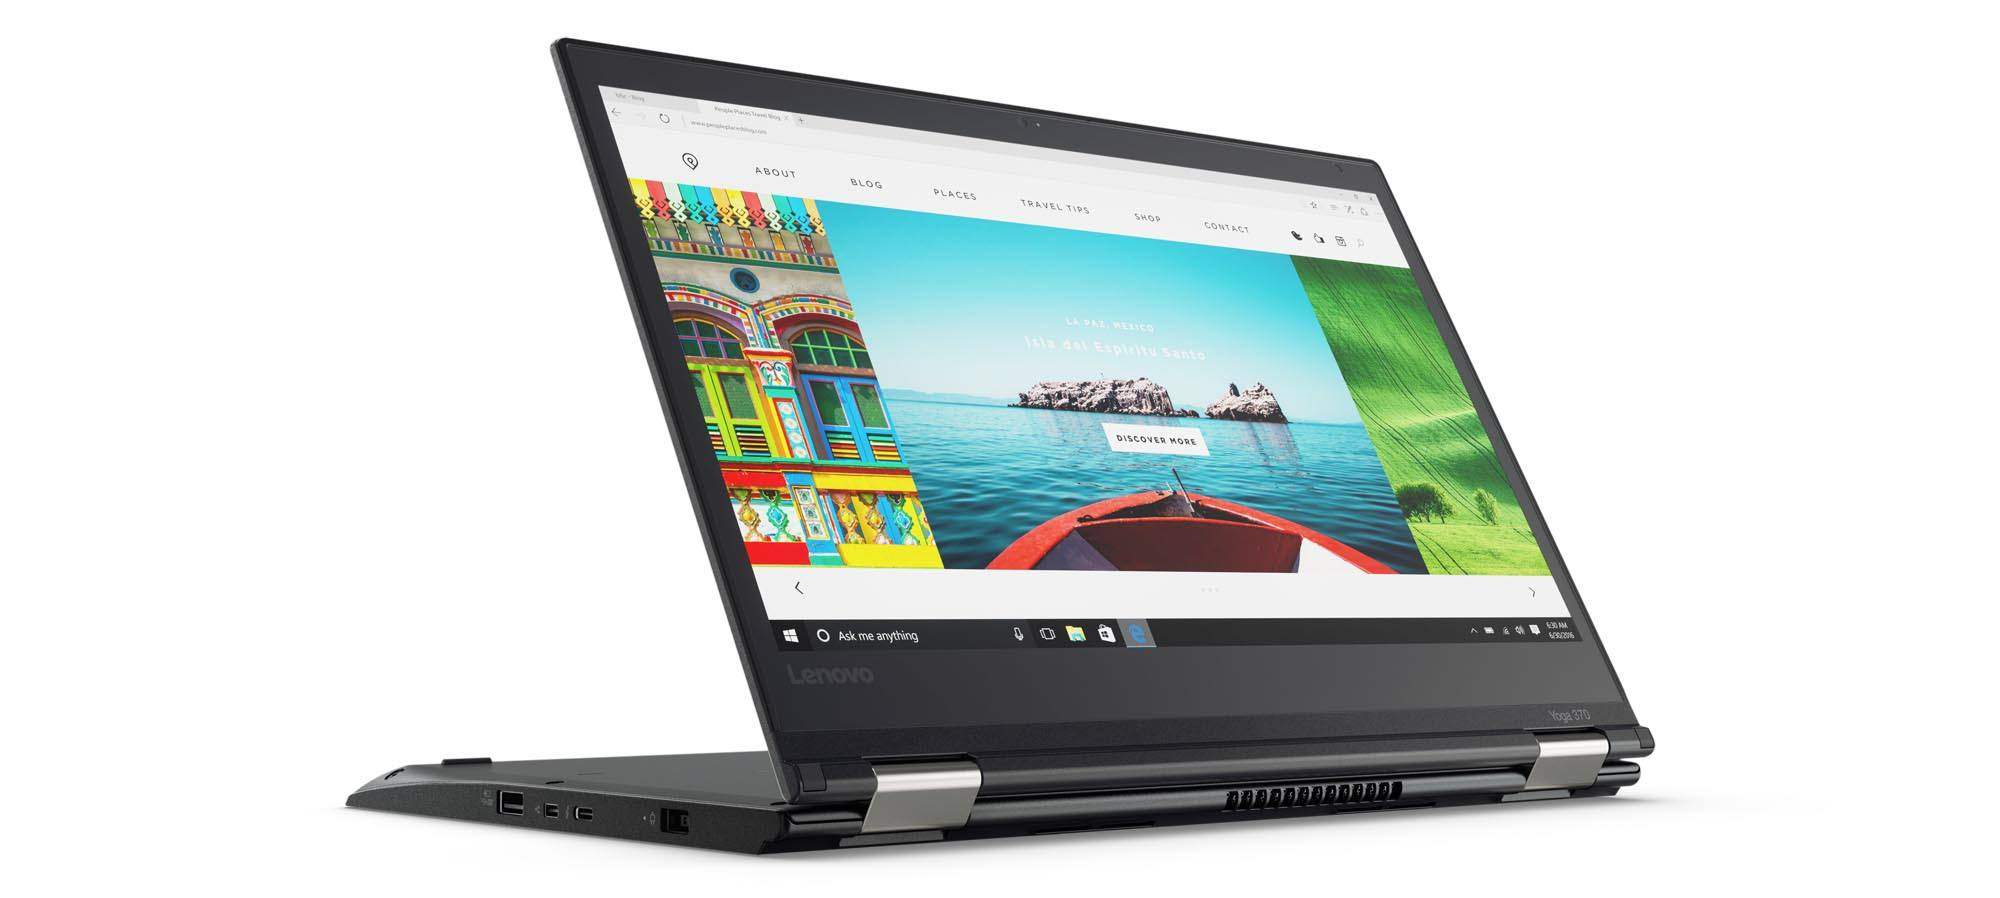 lenovo debuts thinkpad yoga 370 laptop with thunderbolt 3 port and 360 degree hinge tablet news. Black Bedroom Furniture Sets. Home Design Ideas